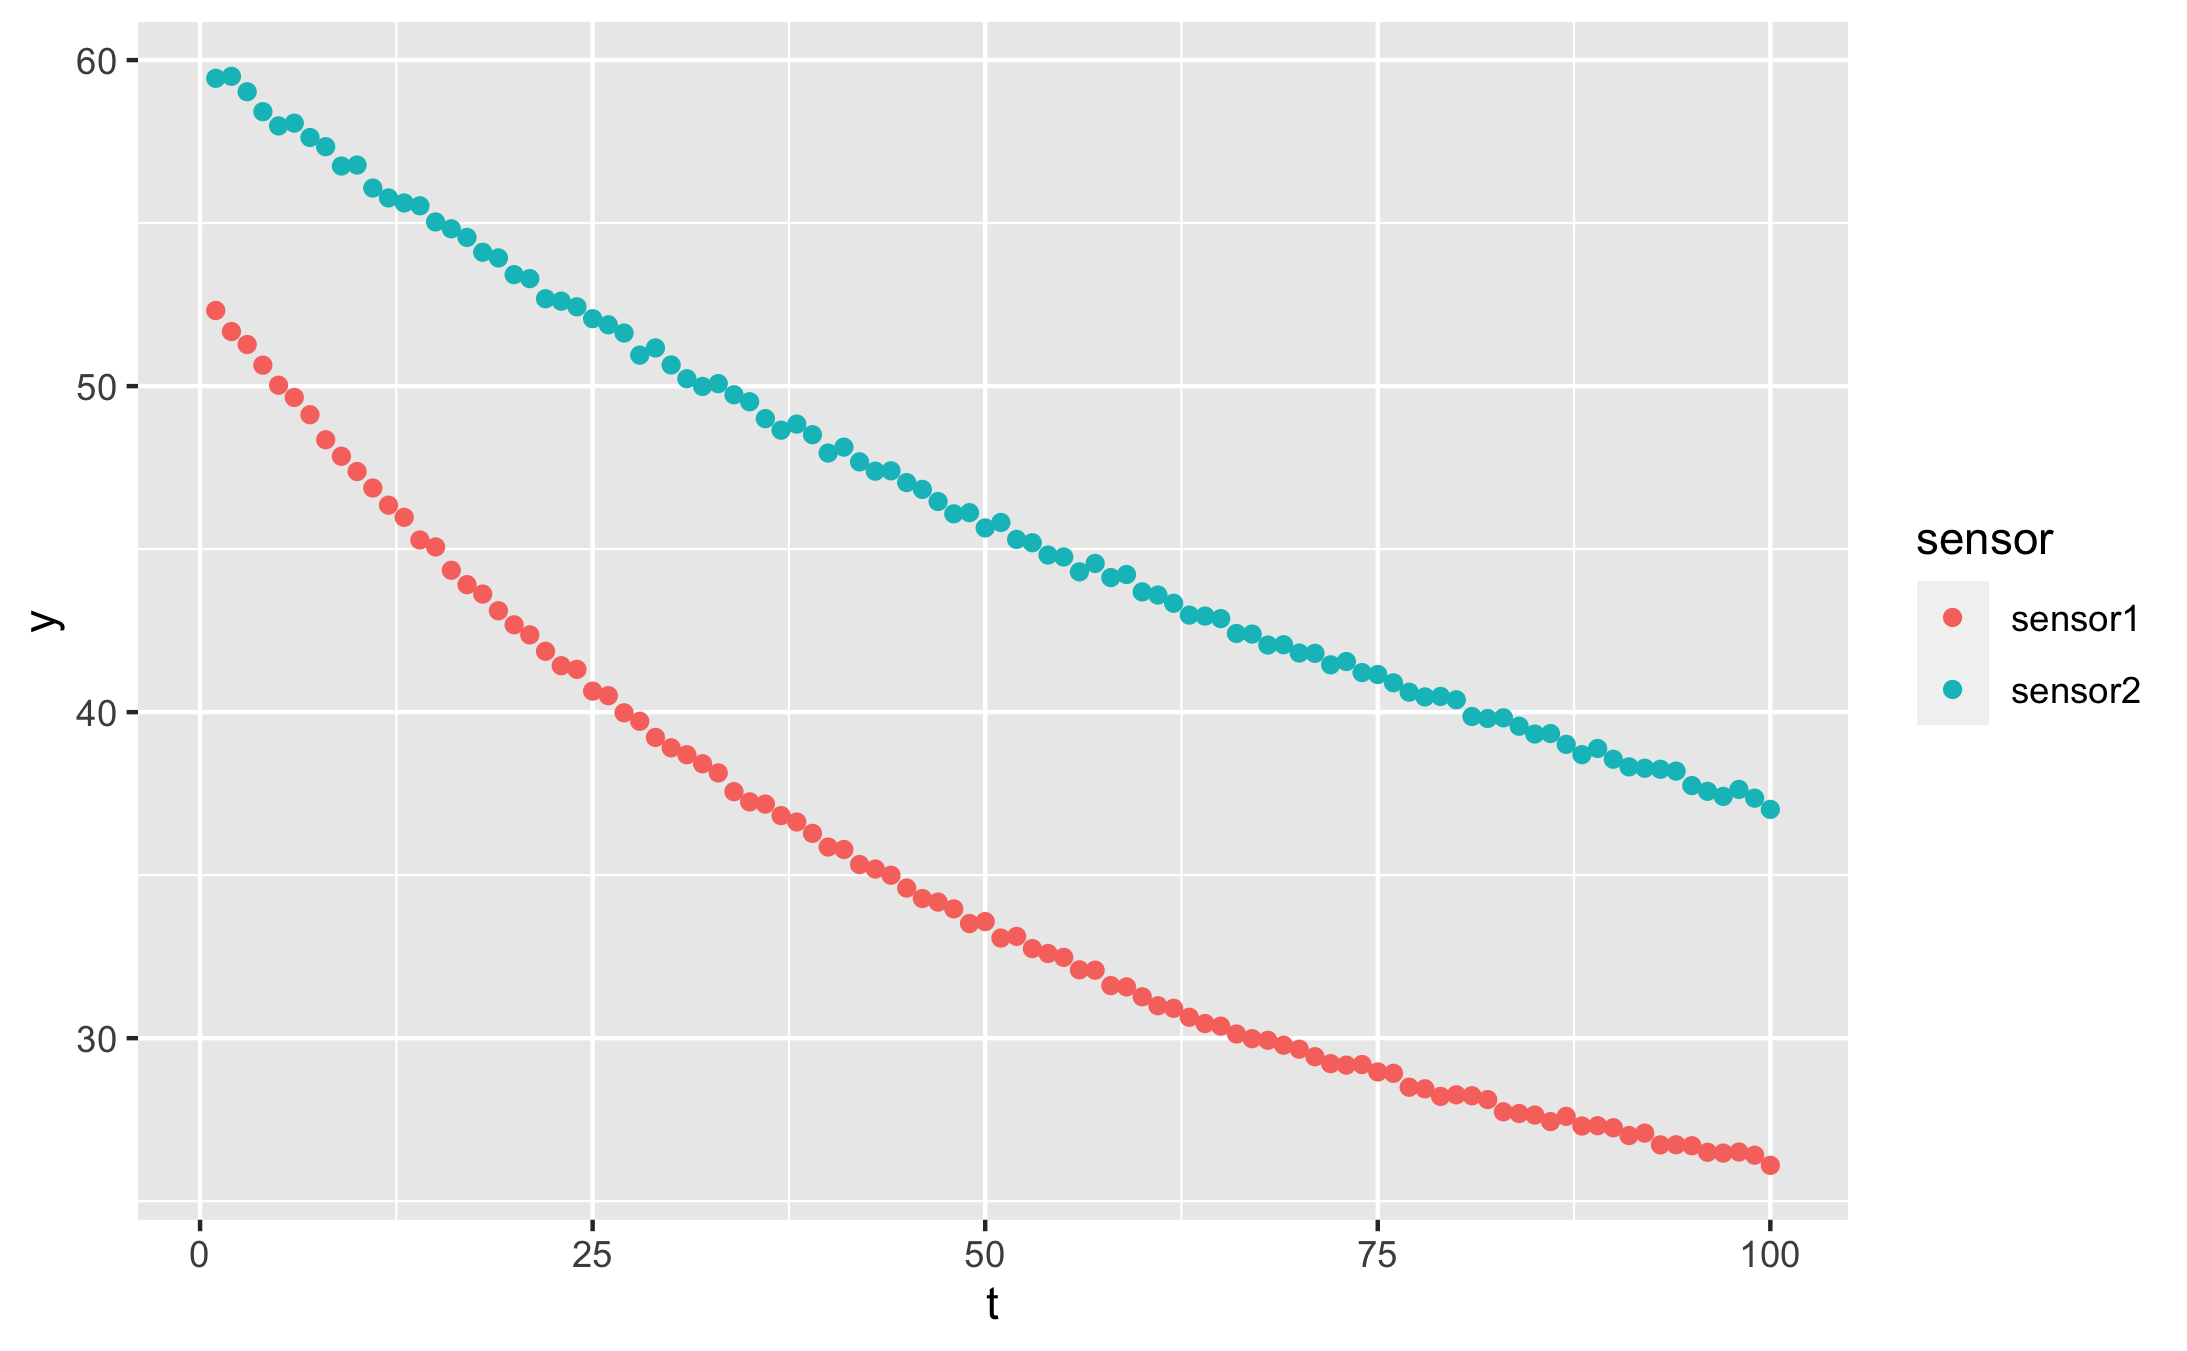 Fitting exponential decays in R, the easy way